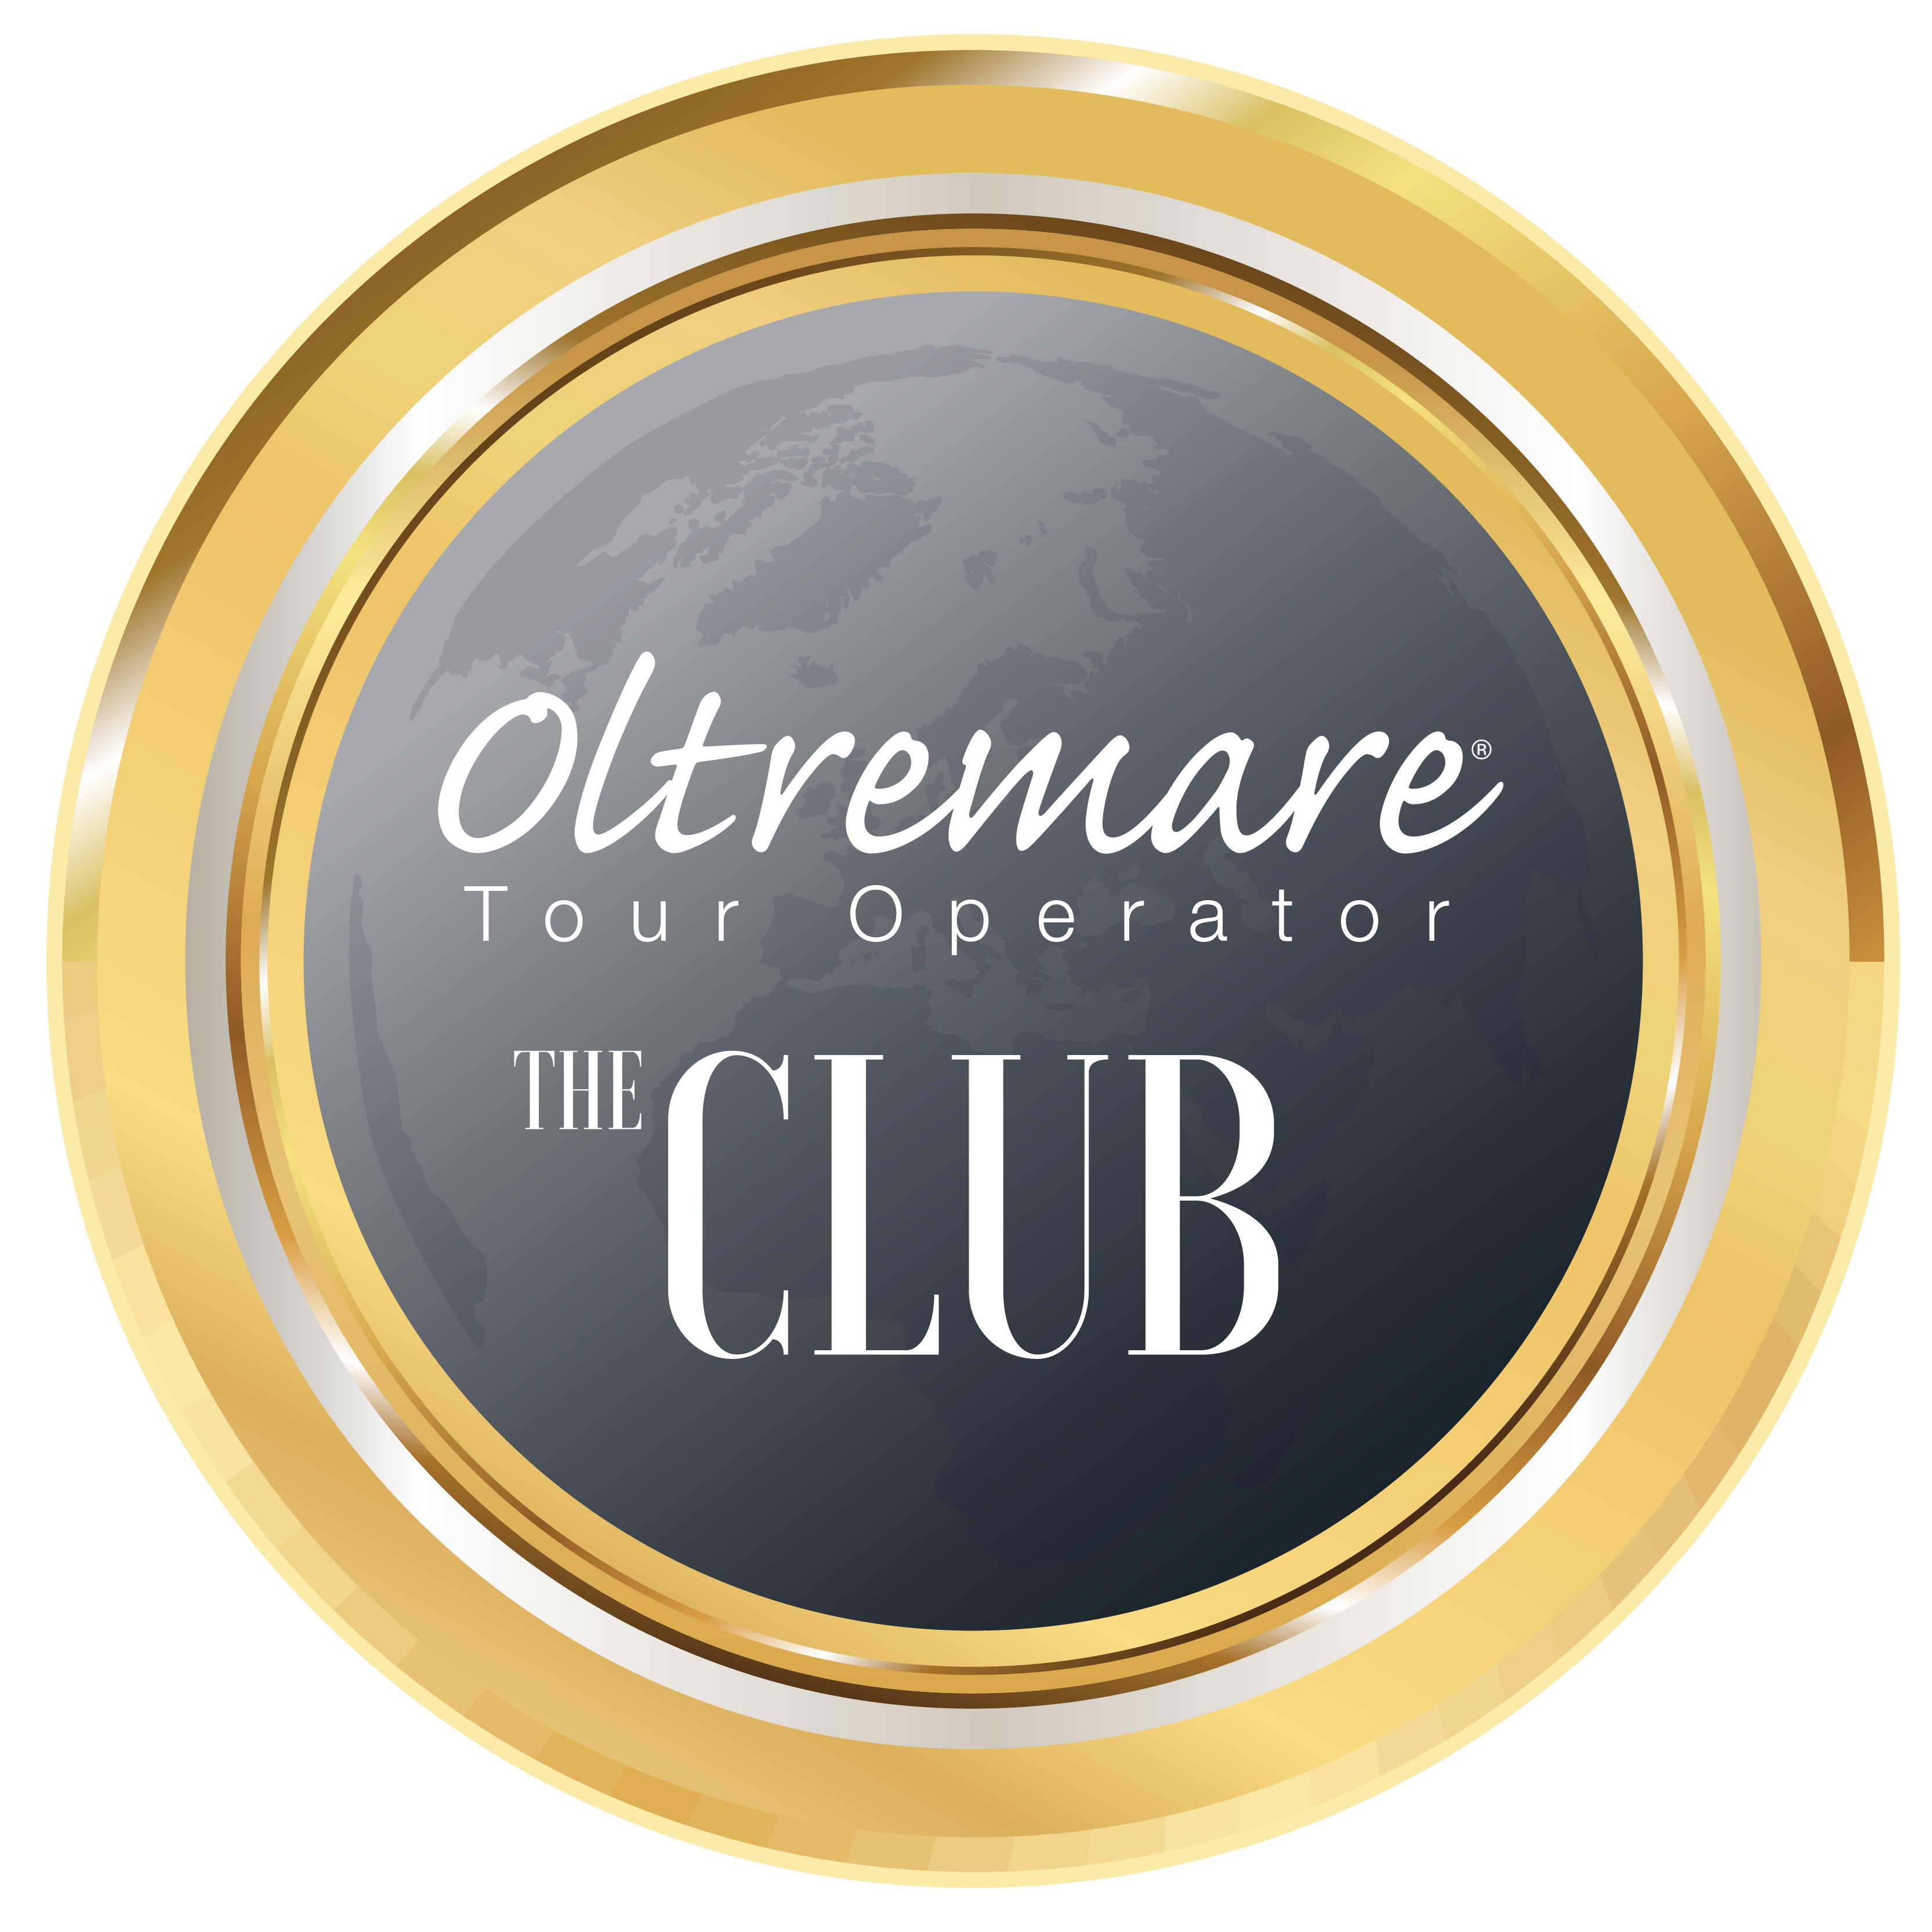 Oltremare The Club logo